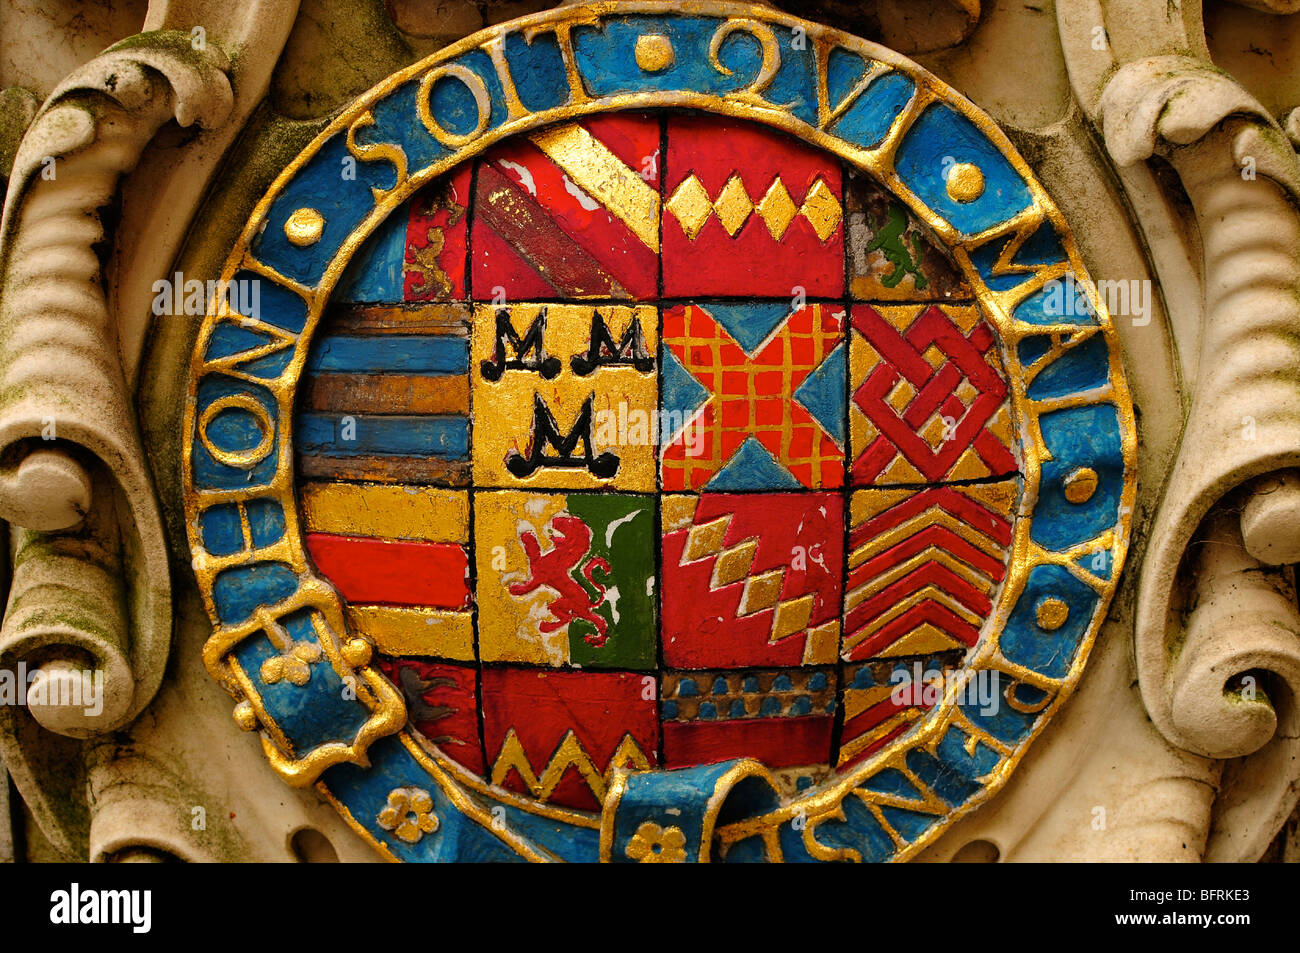 Emblem / crest at Bodleian Library, Oxford University, Oxford, England - Stock Image